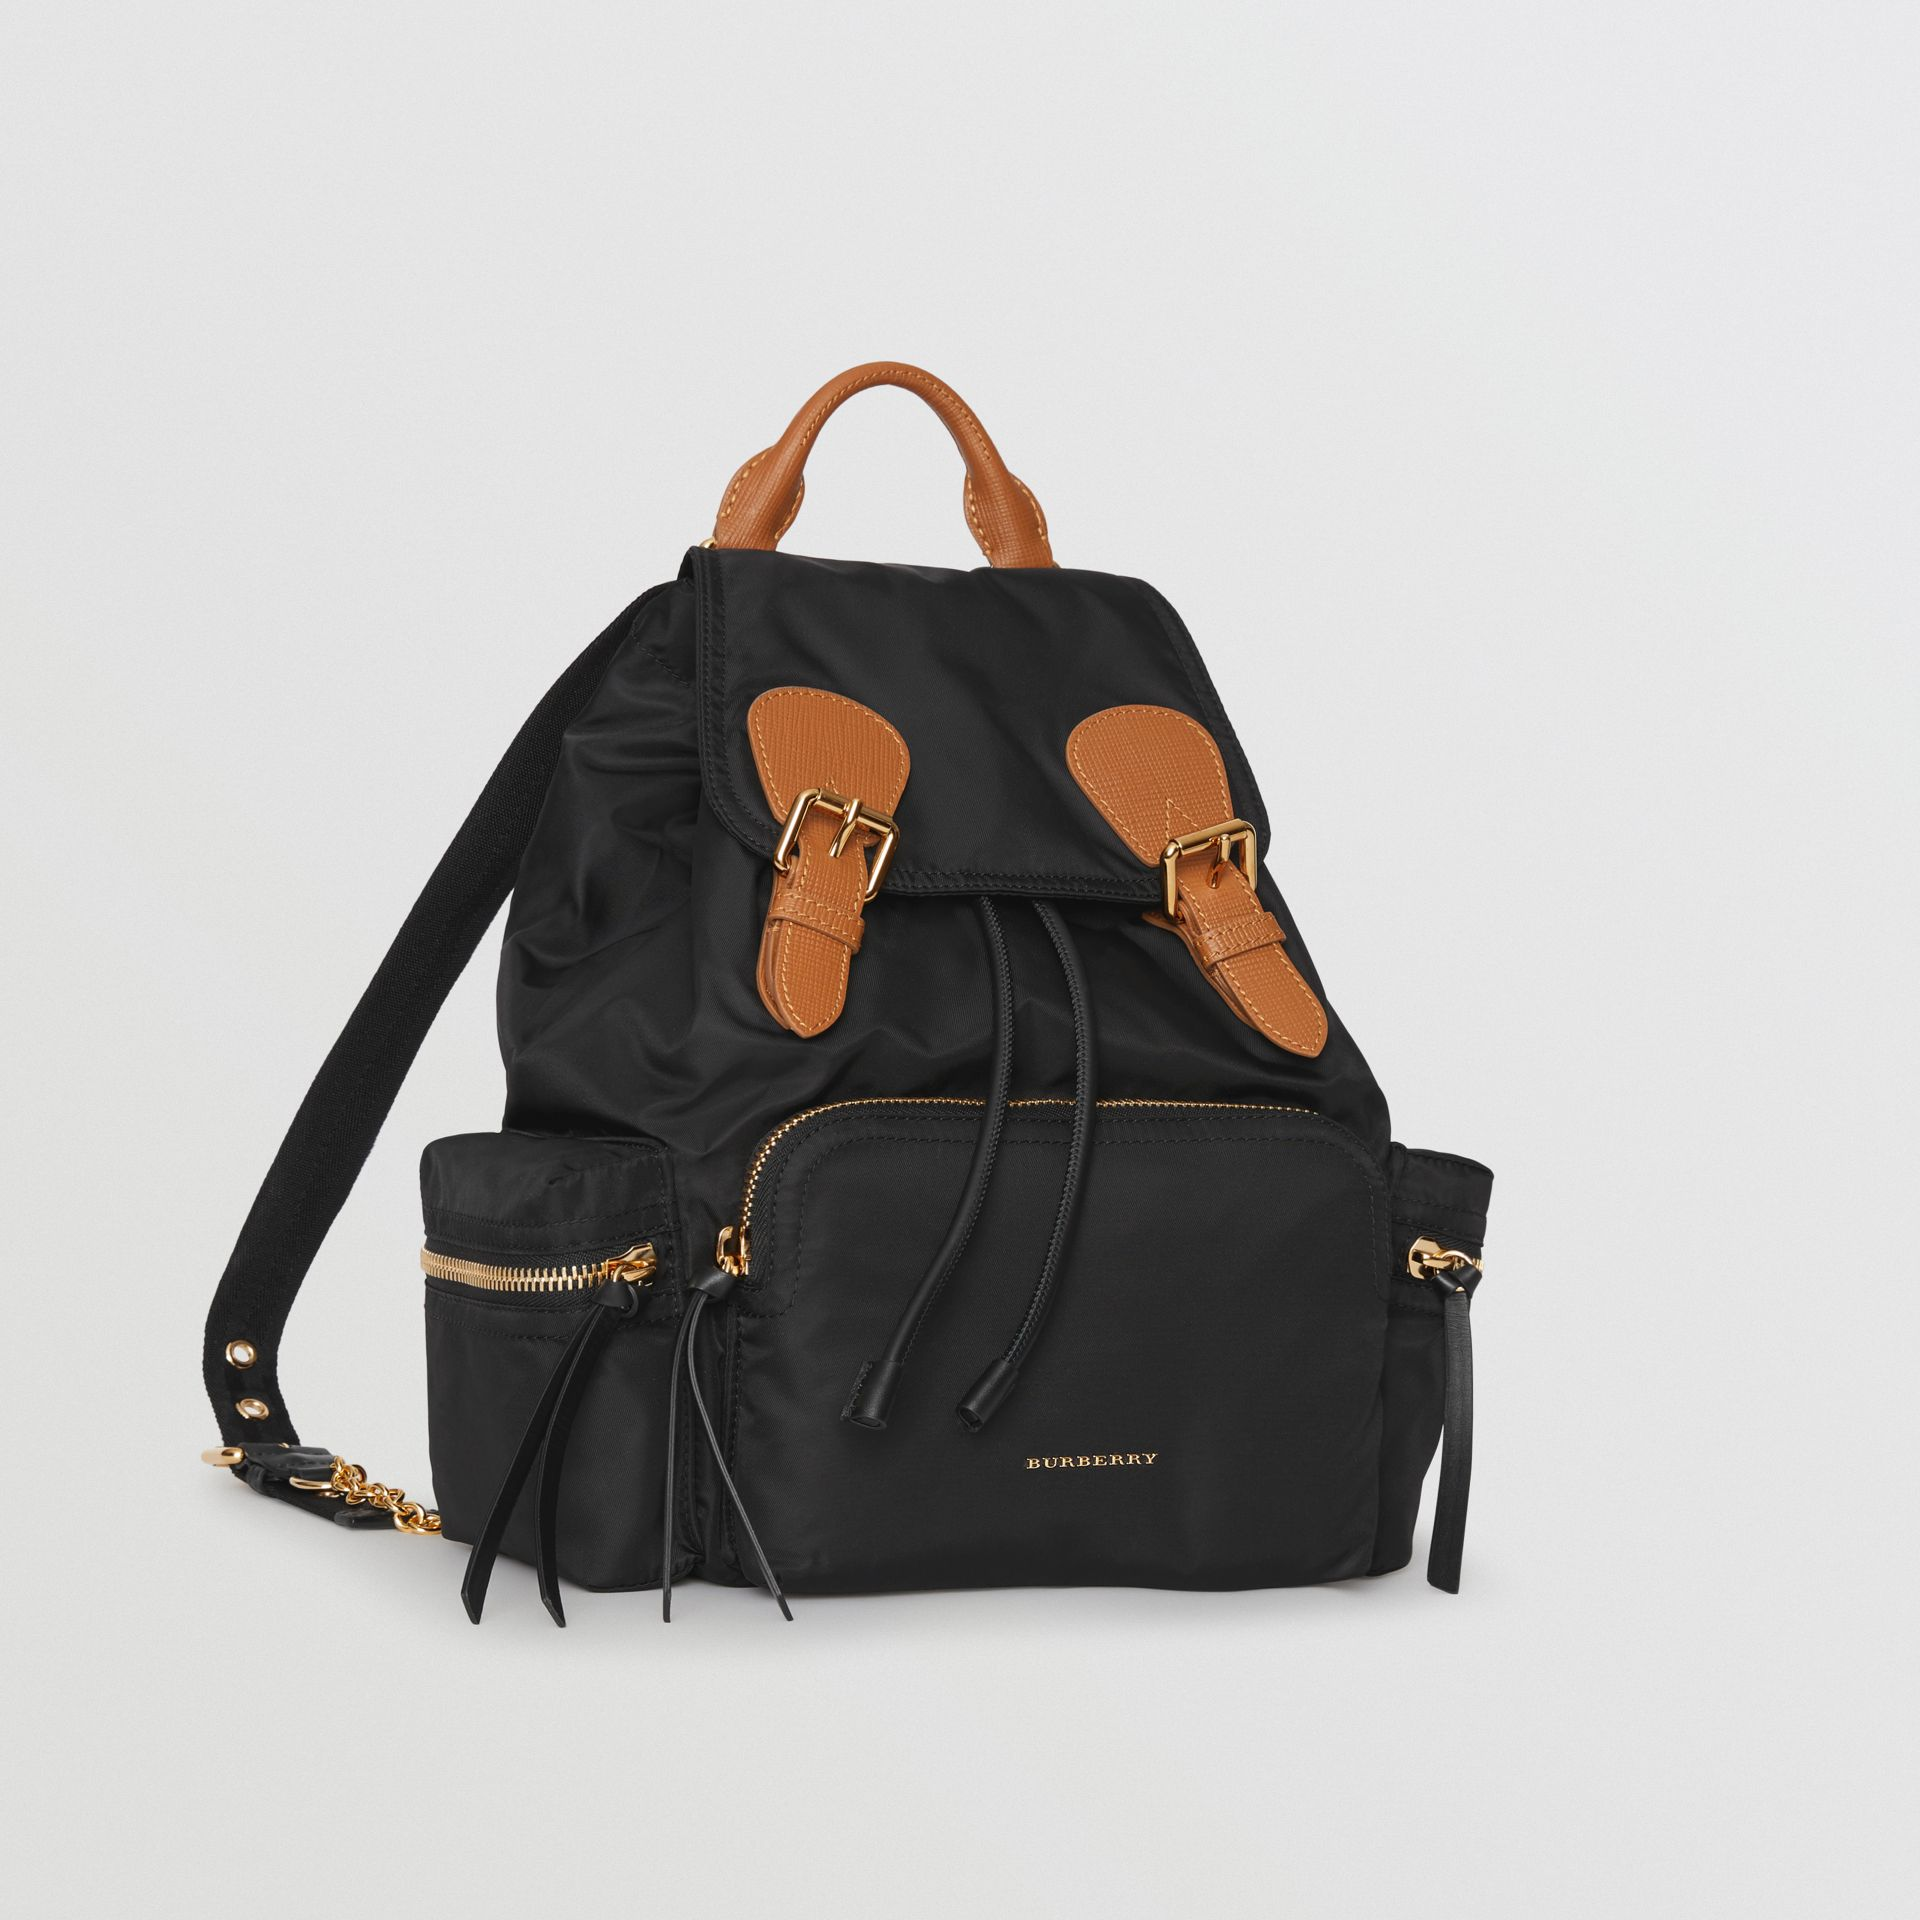 Sac The Rucksack moyen en nylon technique et cuir (Noir) - Femme | Burberry Canada - photo de la galerie 4